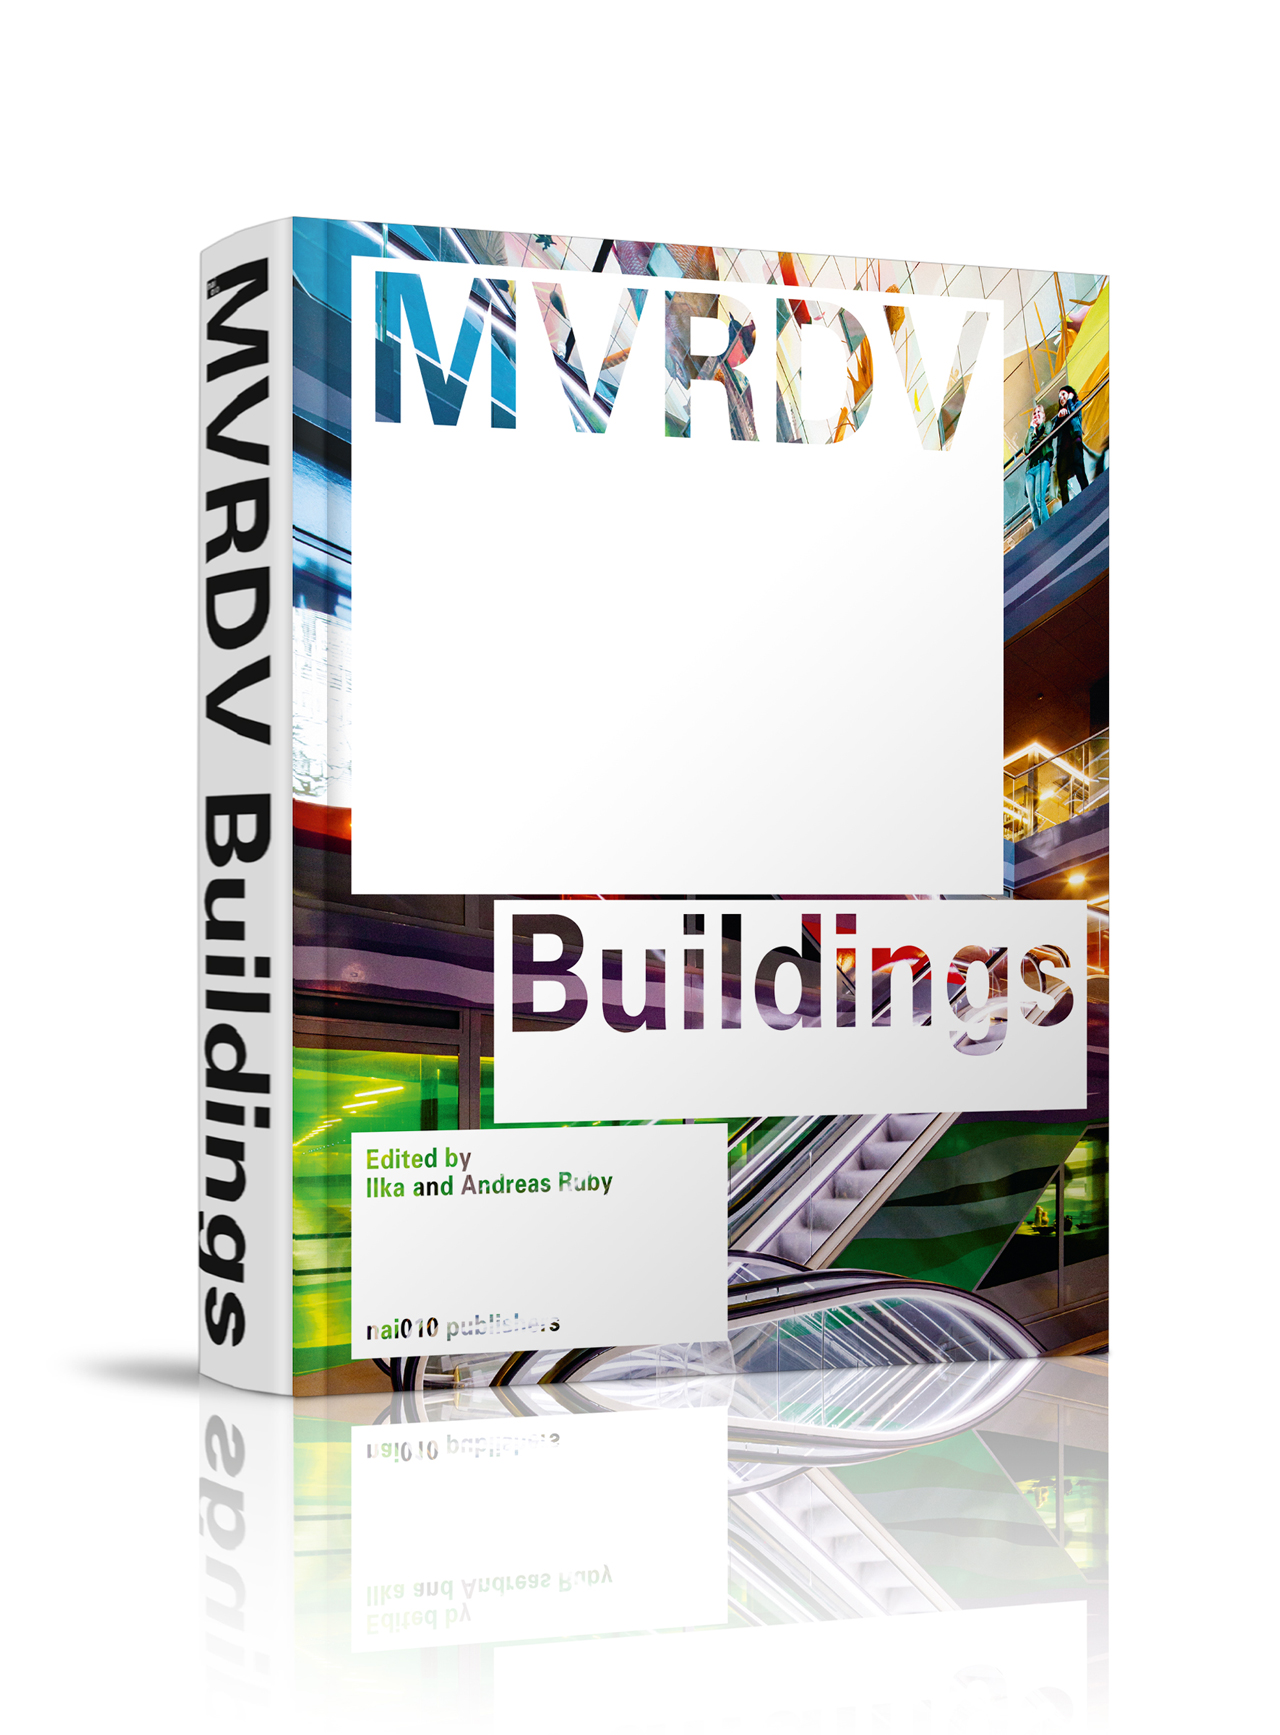 Updated Edition of MVRDV Buildings Monograph released after First Edition sells out